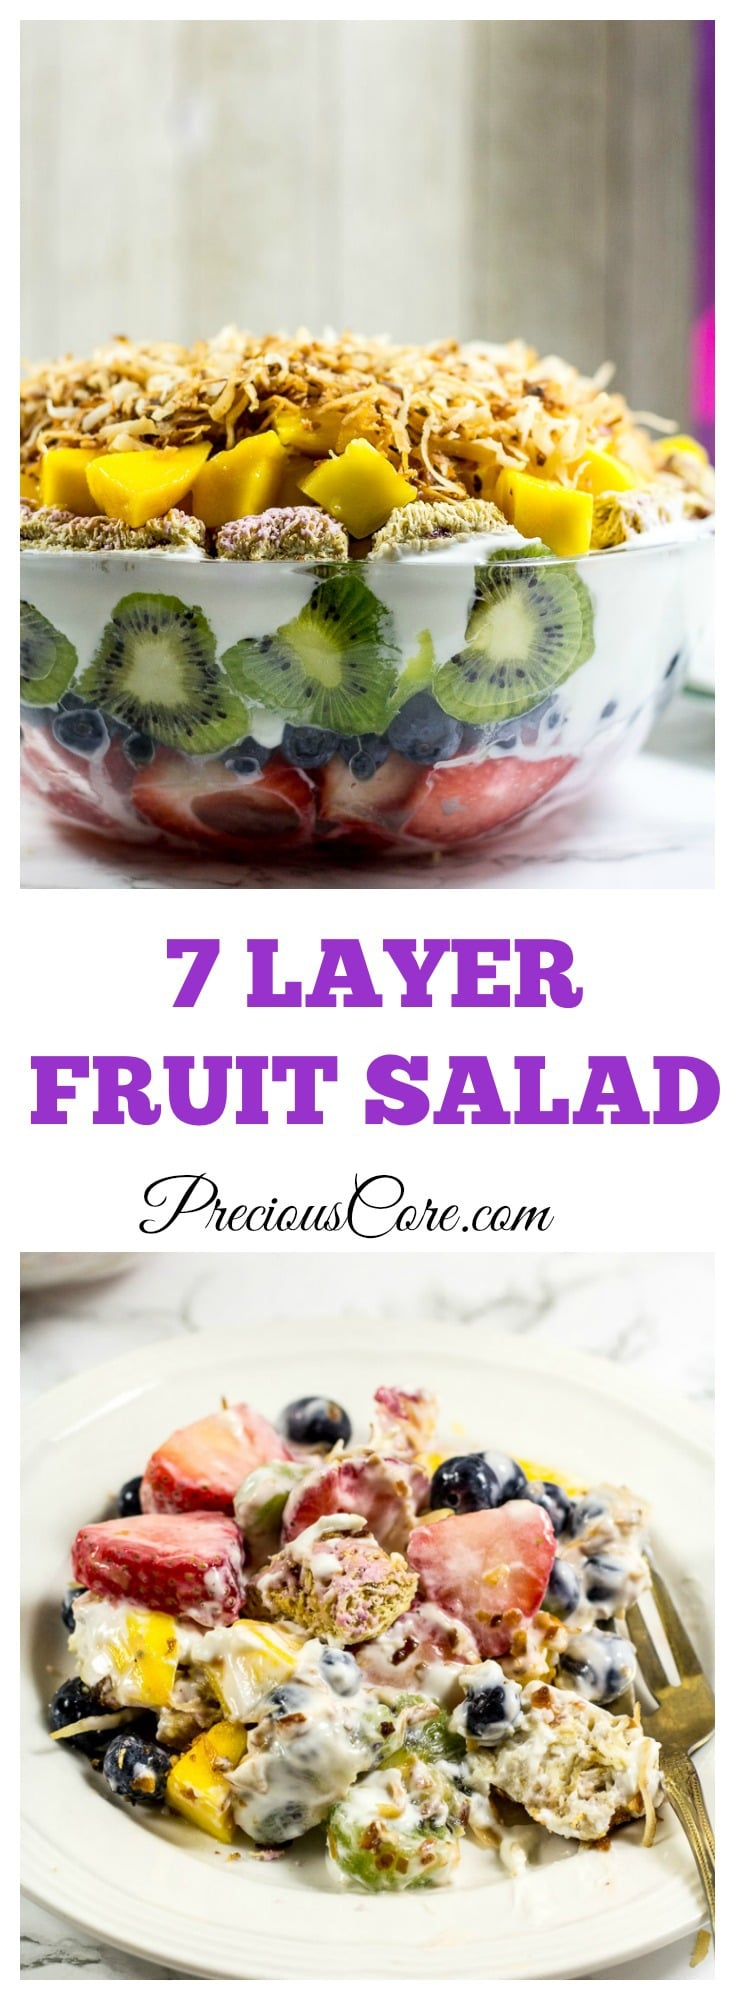 7 Layer Fruit Salad - Precious Core